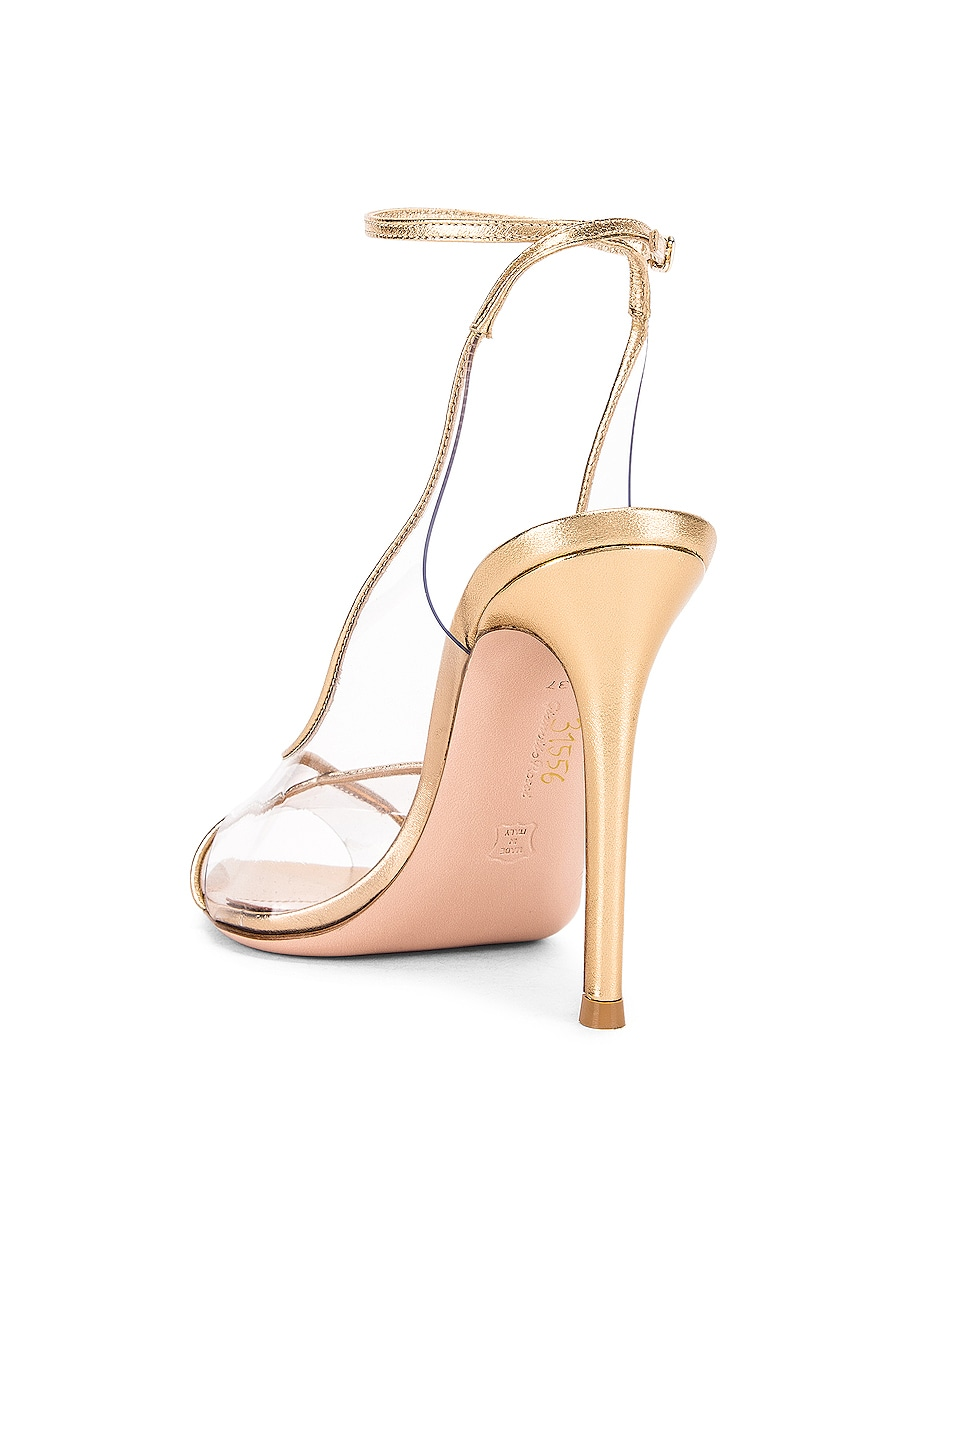 Image 3 of Gianvito Rossi Ankle Strap Heels in Gold & Transparent